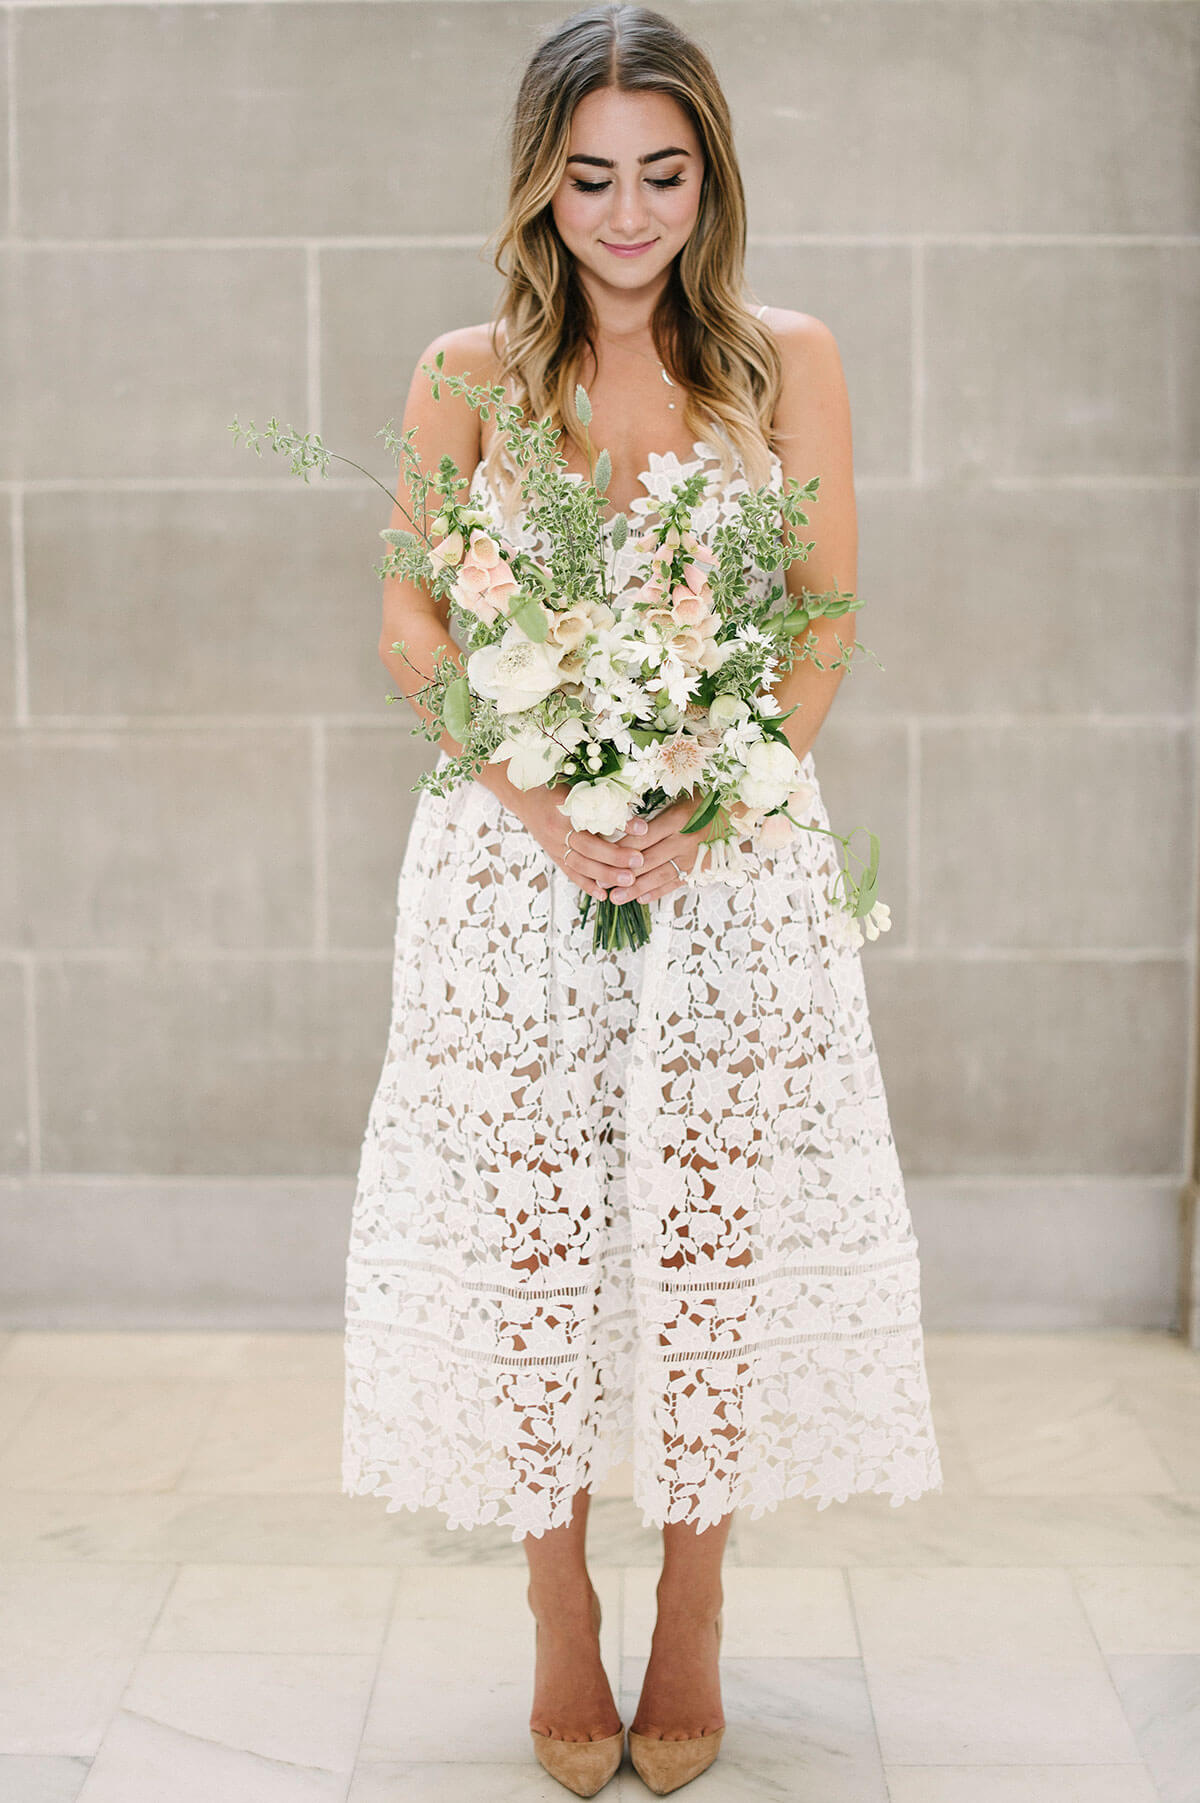 Ten city hall wedding tips melanie duerkopp for Bridal dress for civil wedding